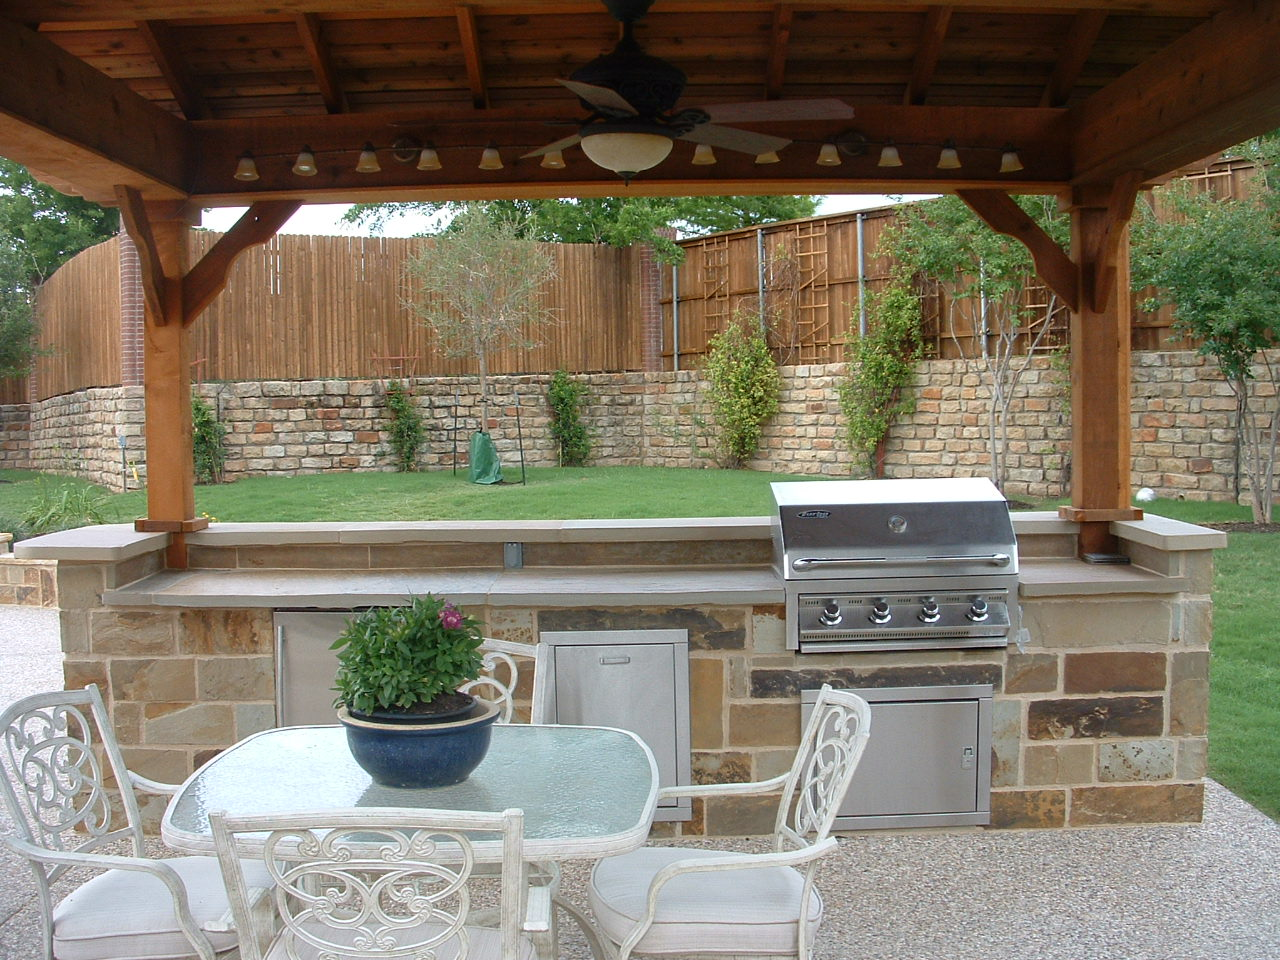 An Outdoor Kitchen Set With